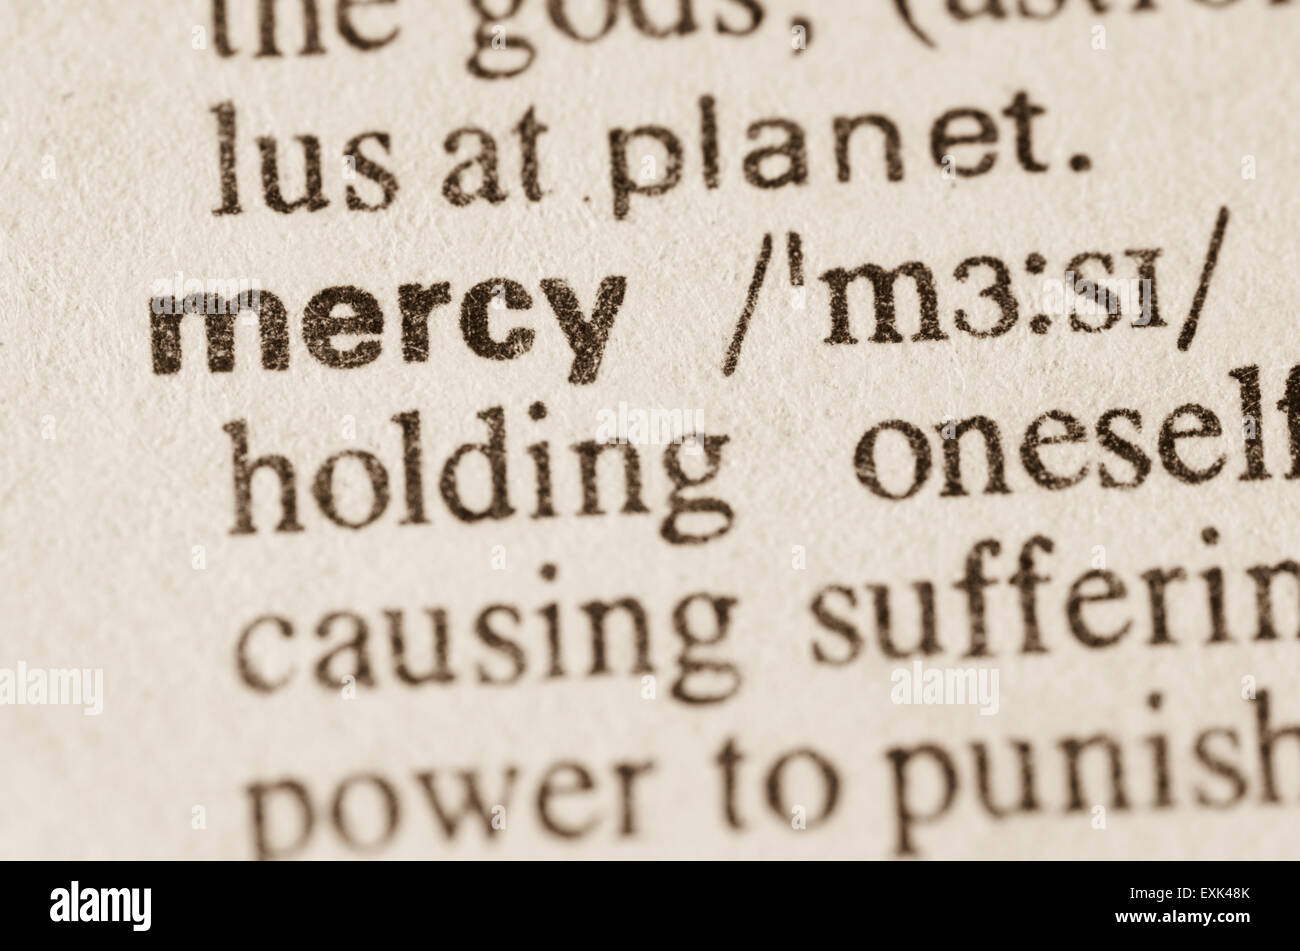 definition of word mercy in dictionary stock photo: 85242995 - alamy